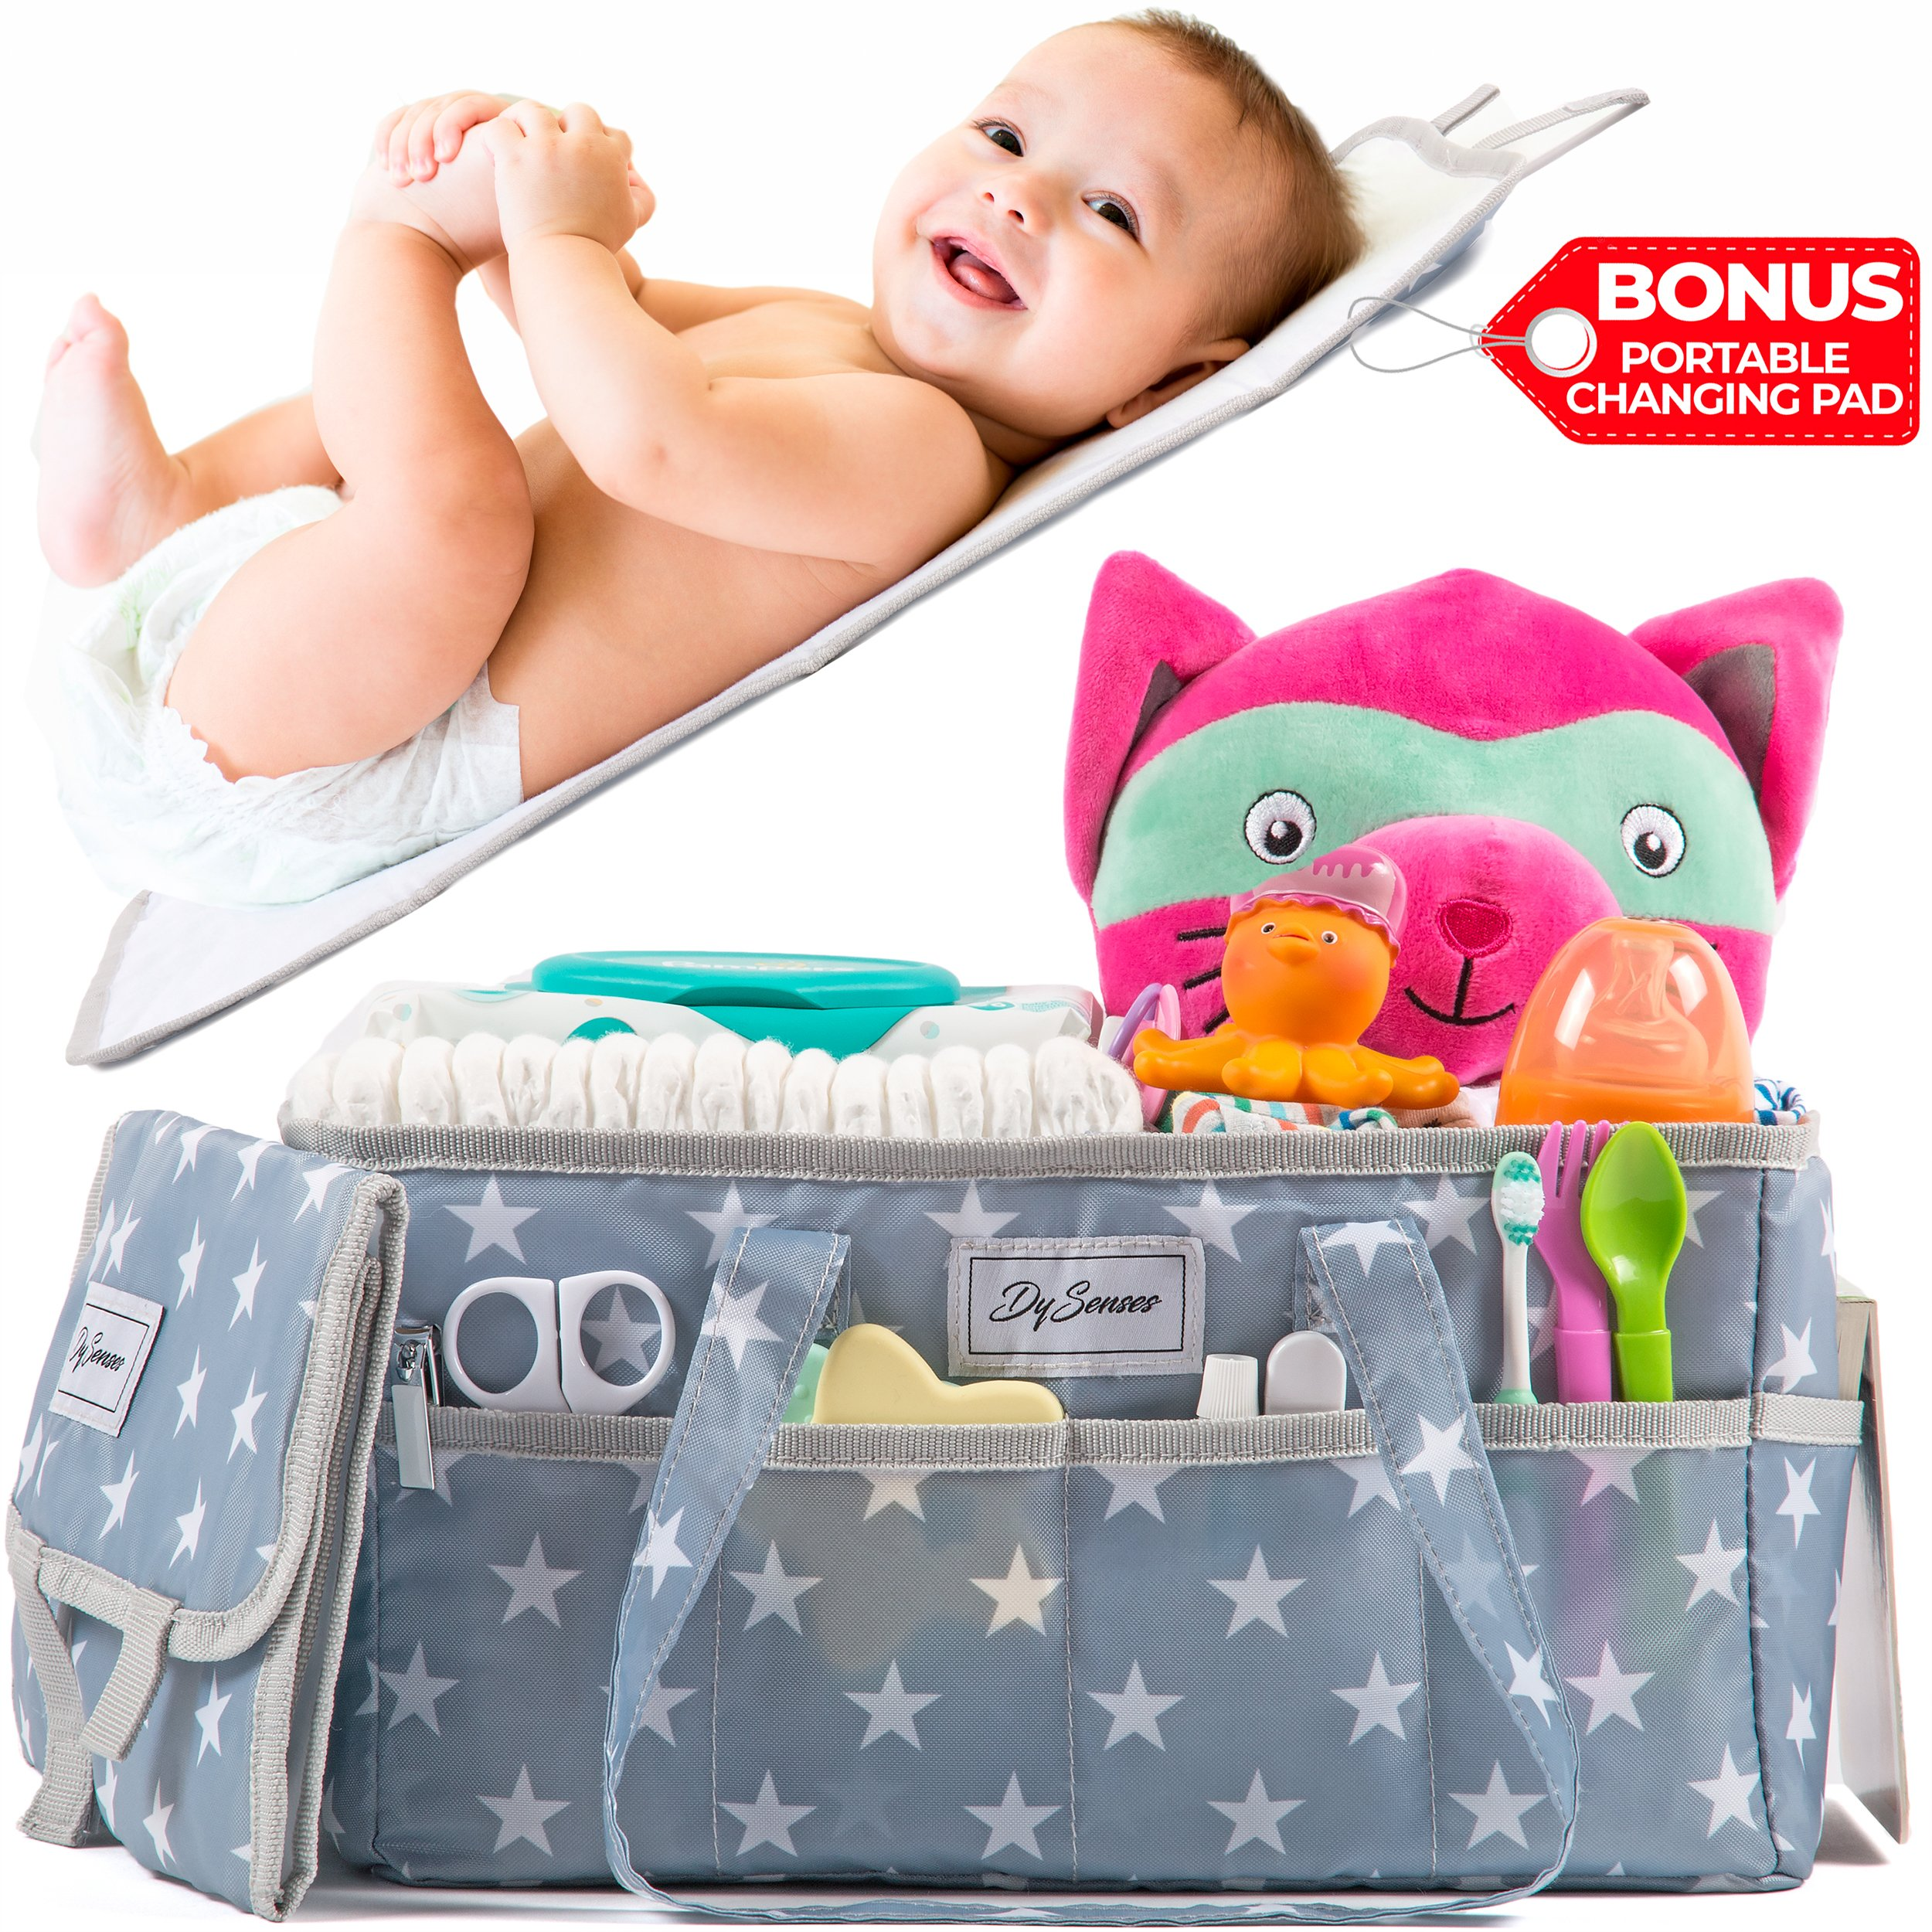 Diaper Storage Caddy Nursery Organizer | Grey Baby Diaper Caddy & Portable Changing Pad | Suitable for Car Travel Picnic & Nursing Station by DySenses (Image #1)